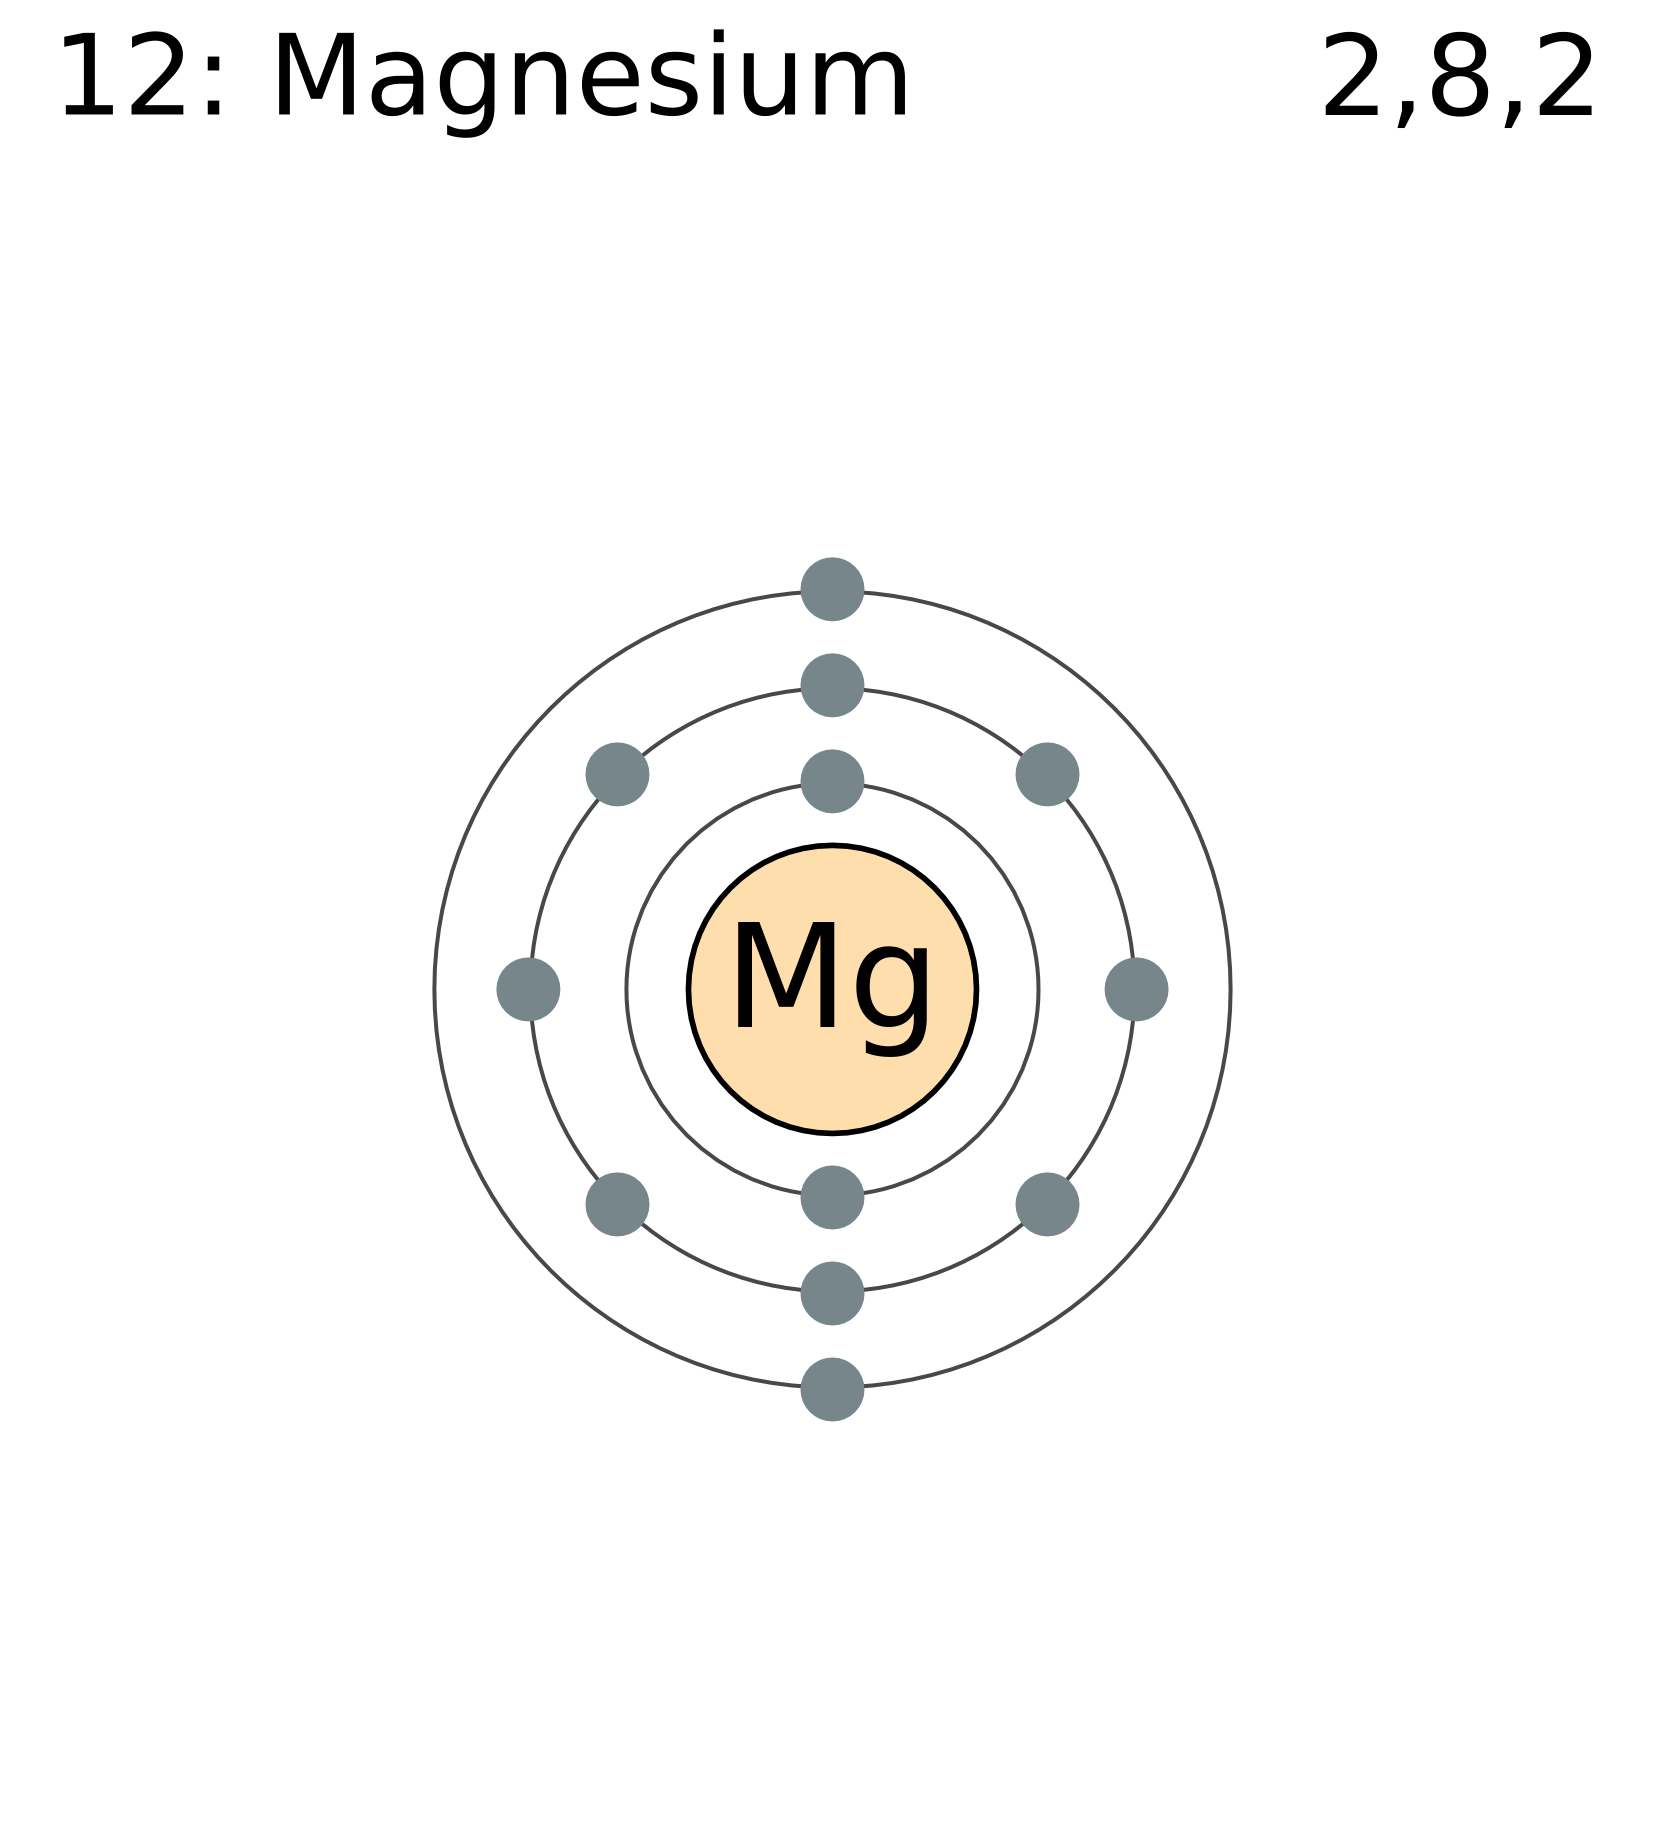 (http://upload.wikimedia.org/wikipedia/commons/4/47/Electron_shell_012_magnesium.png)